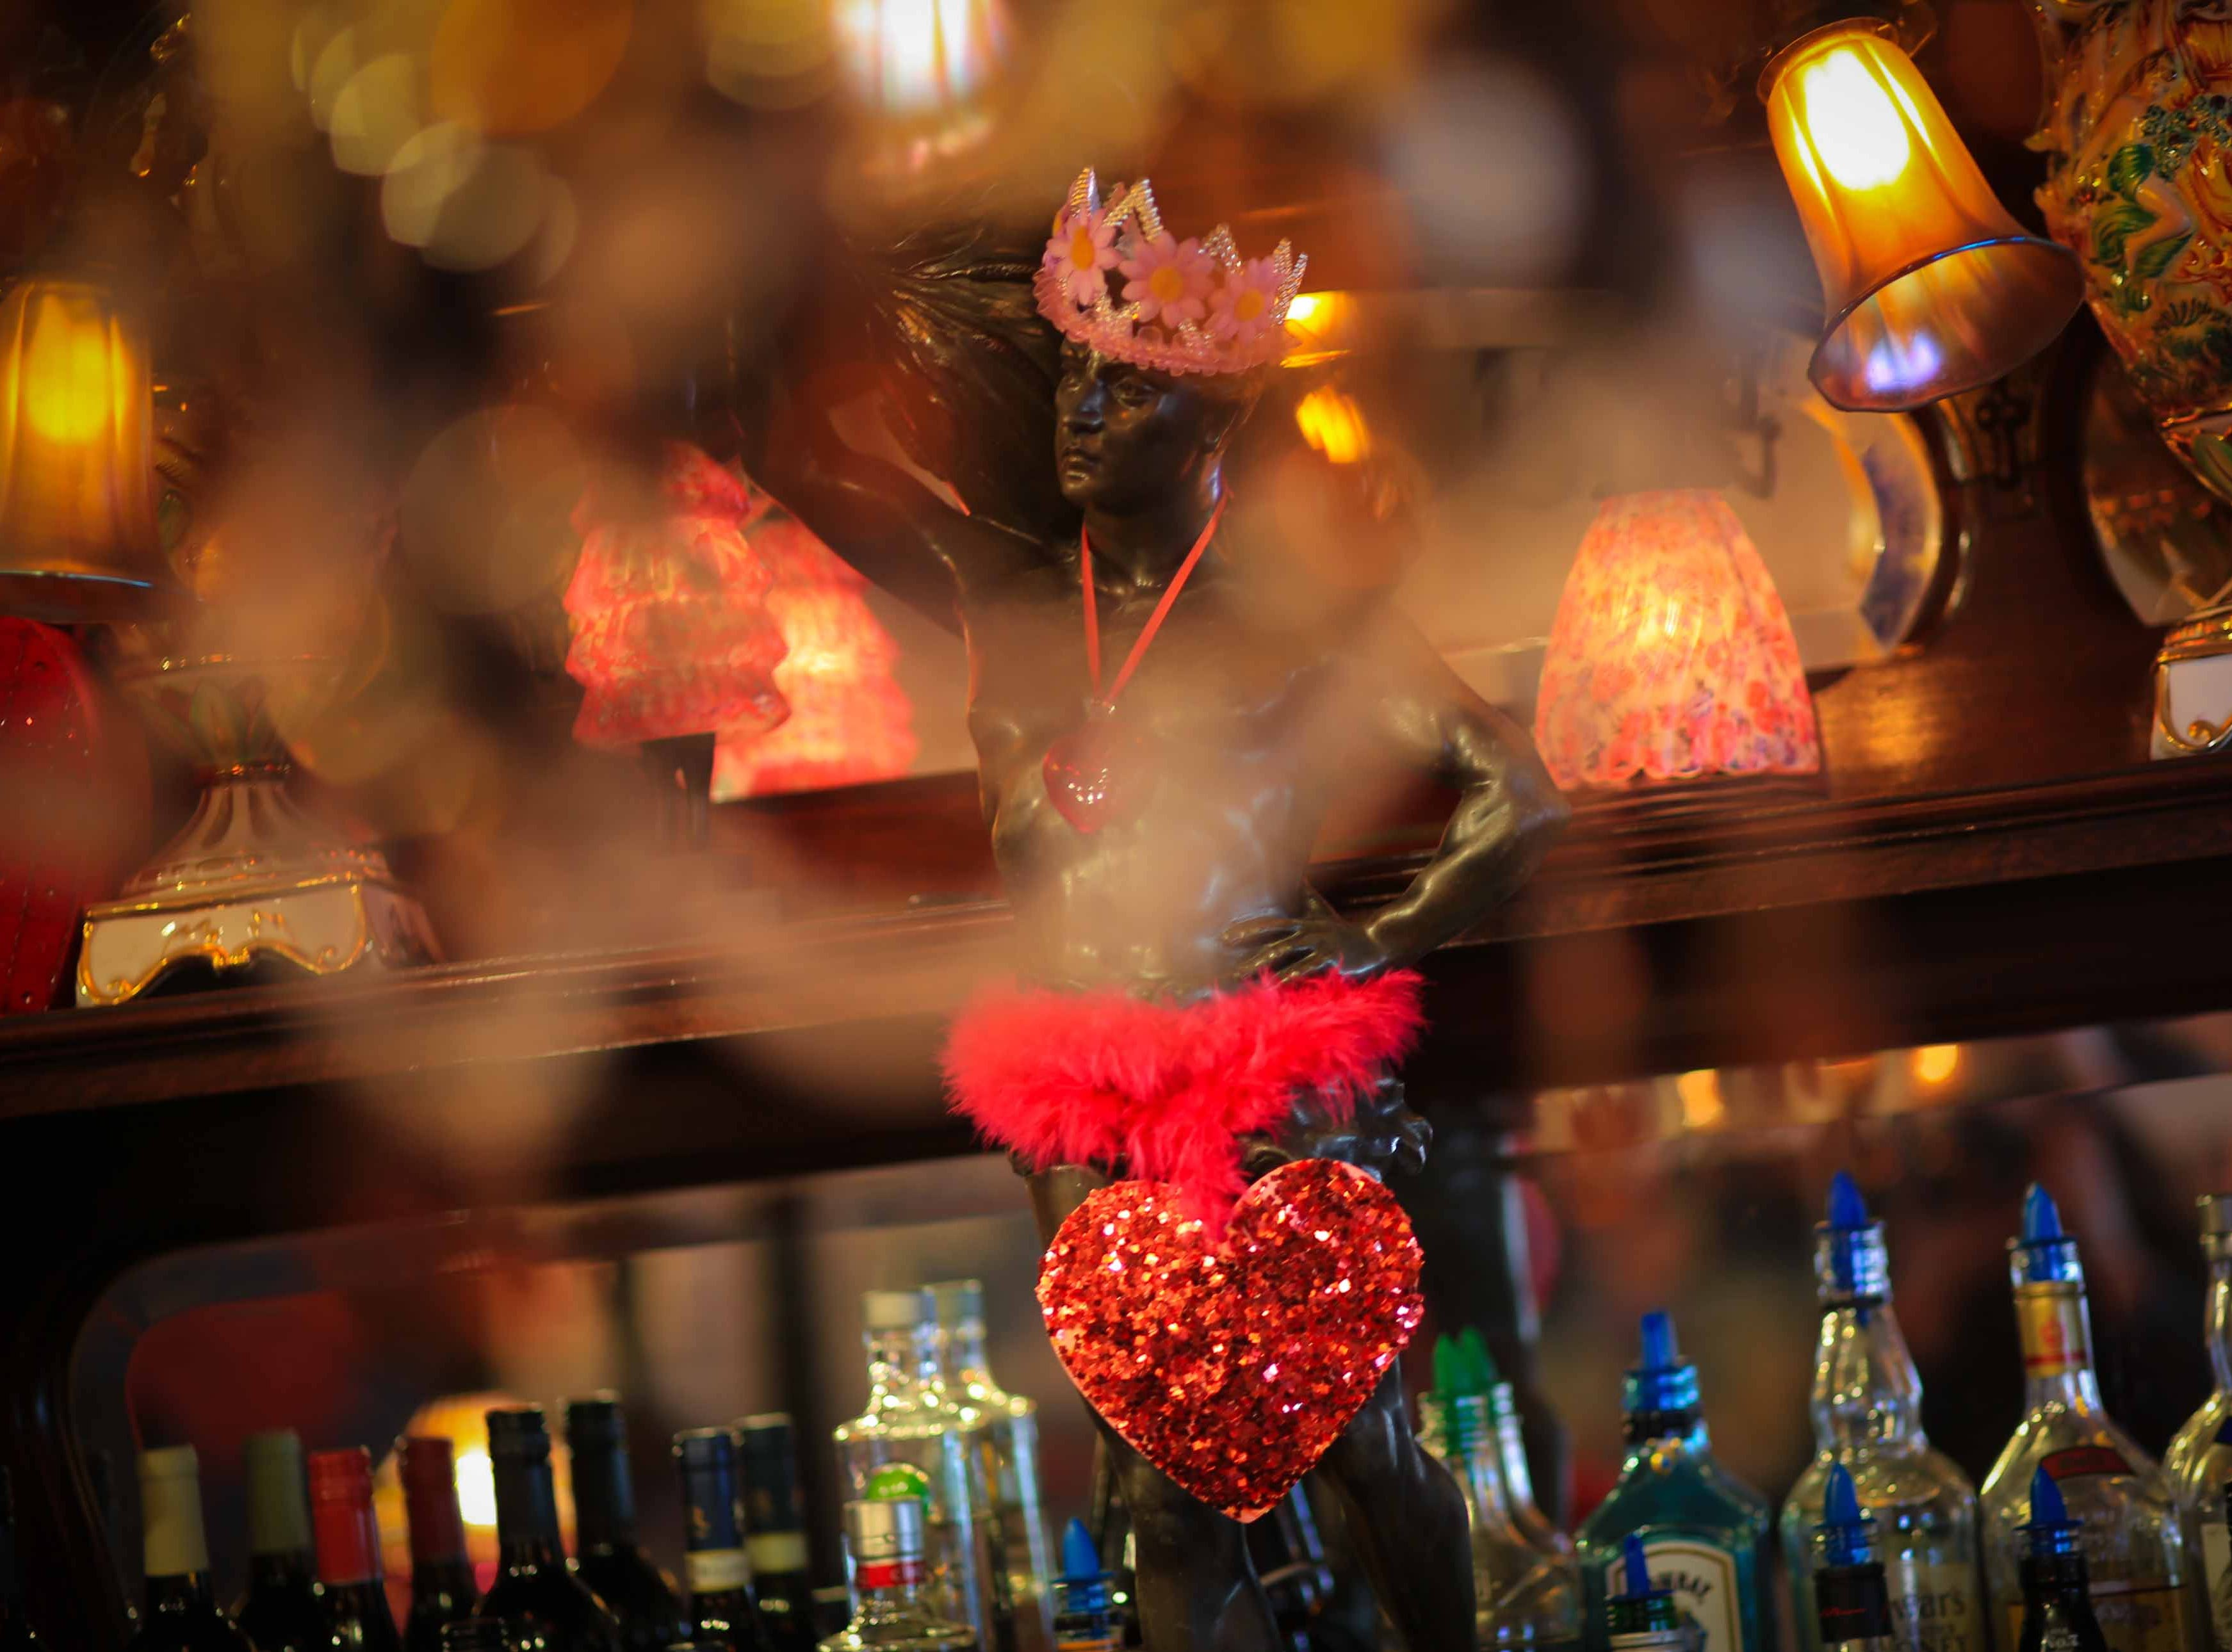 Valentine's Day decor is spread throughout Serendipity Restaurant in Oak Orchard to bring the romance to the holiday.